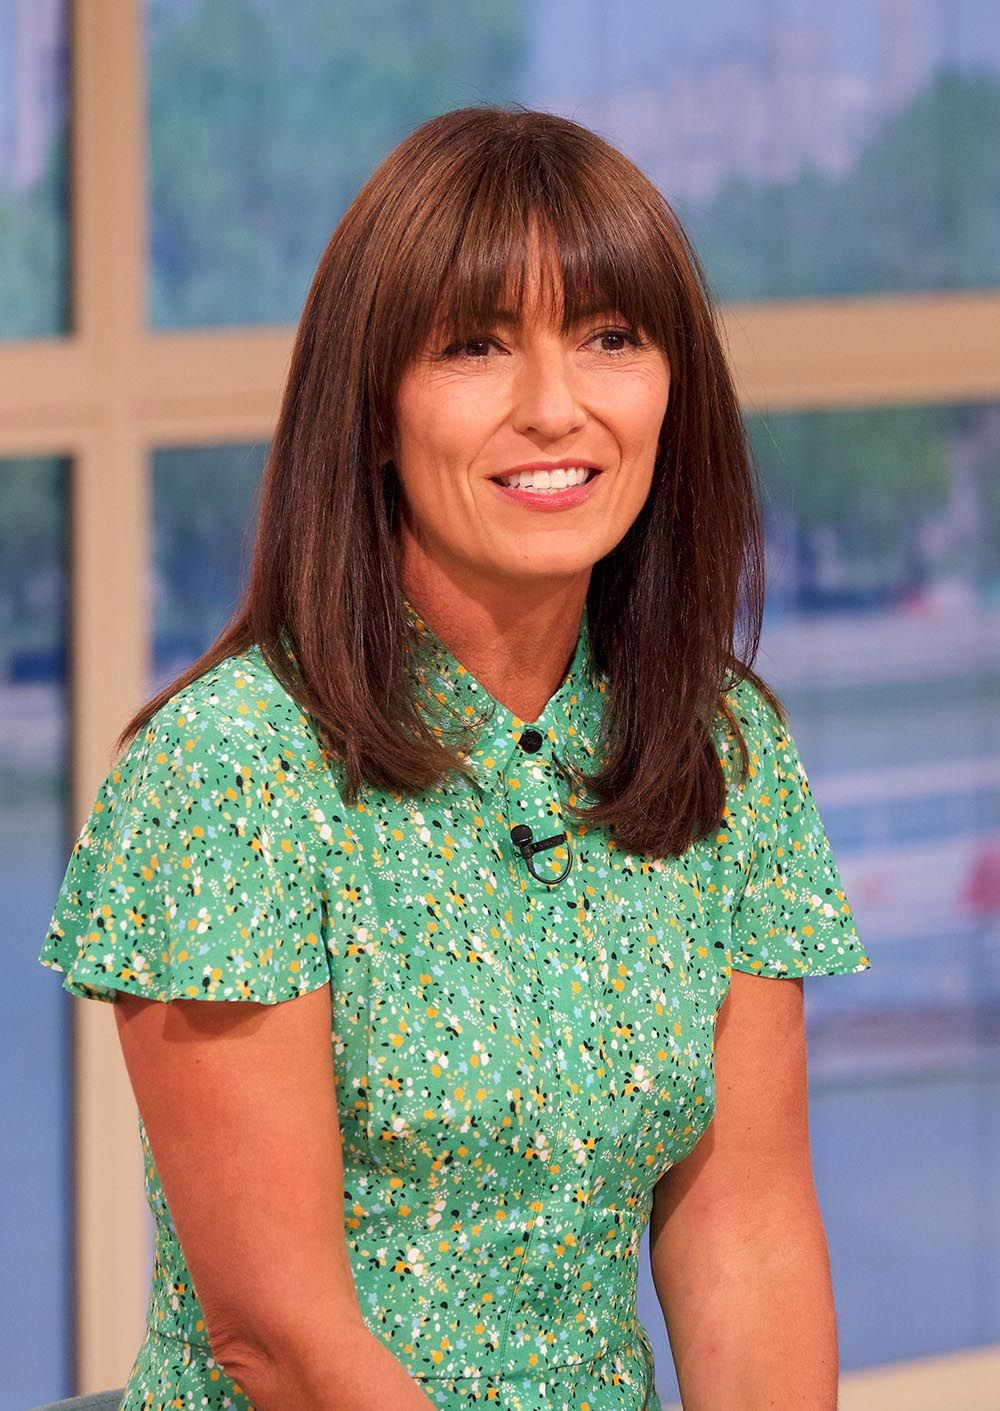 Davina McCall's just worn a stunning shirt dress on This Morning